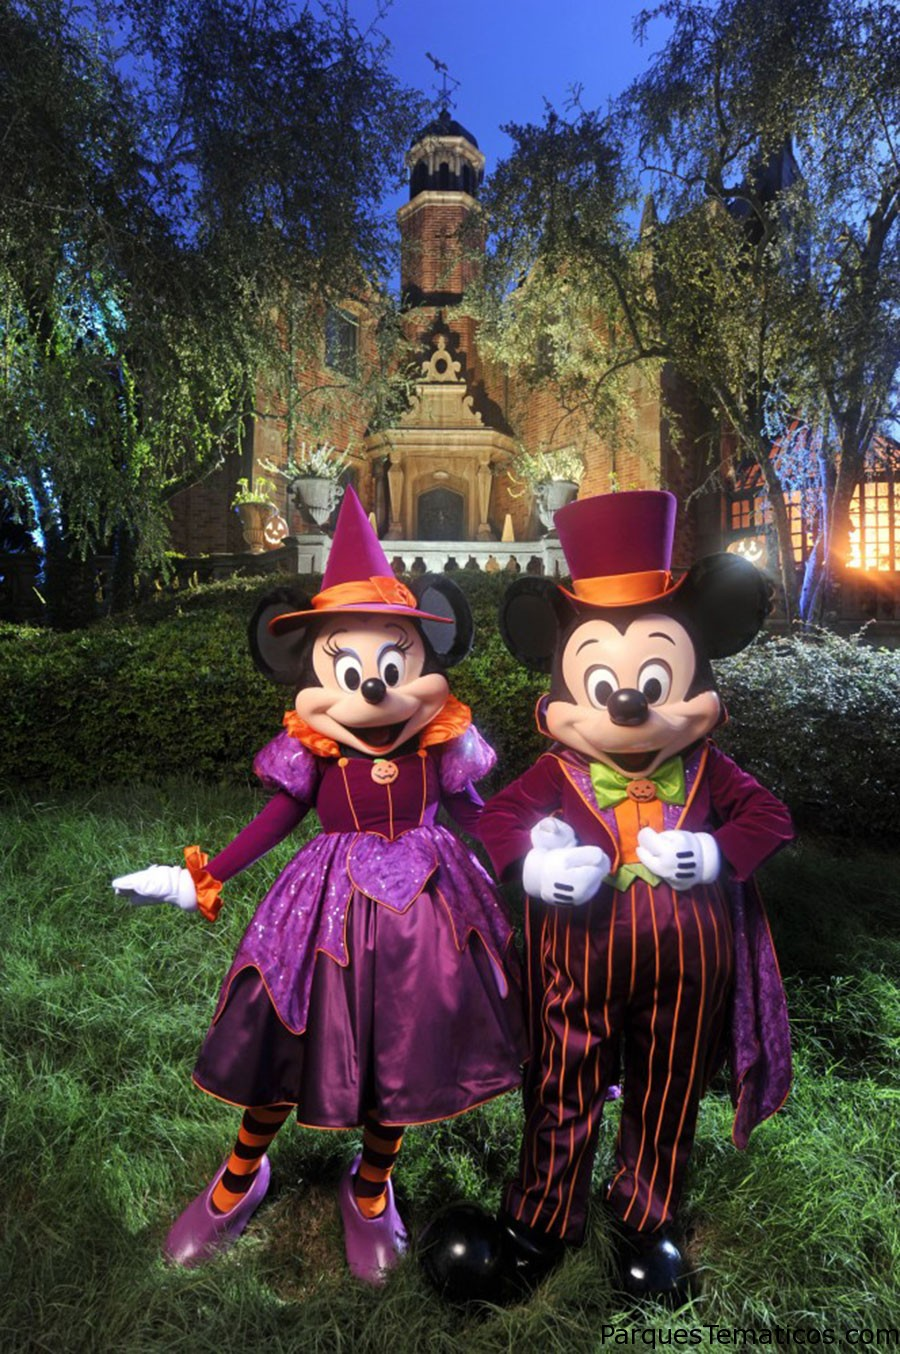 Risas y sustos en Walt Disney World con Mickey's Not-So-Scary Halloween Party desde 2 de septiembre